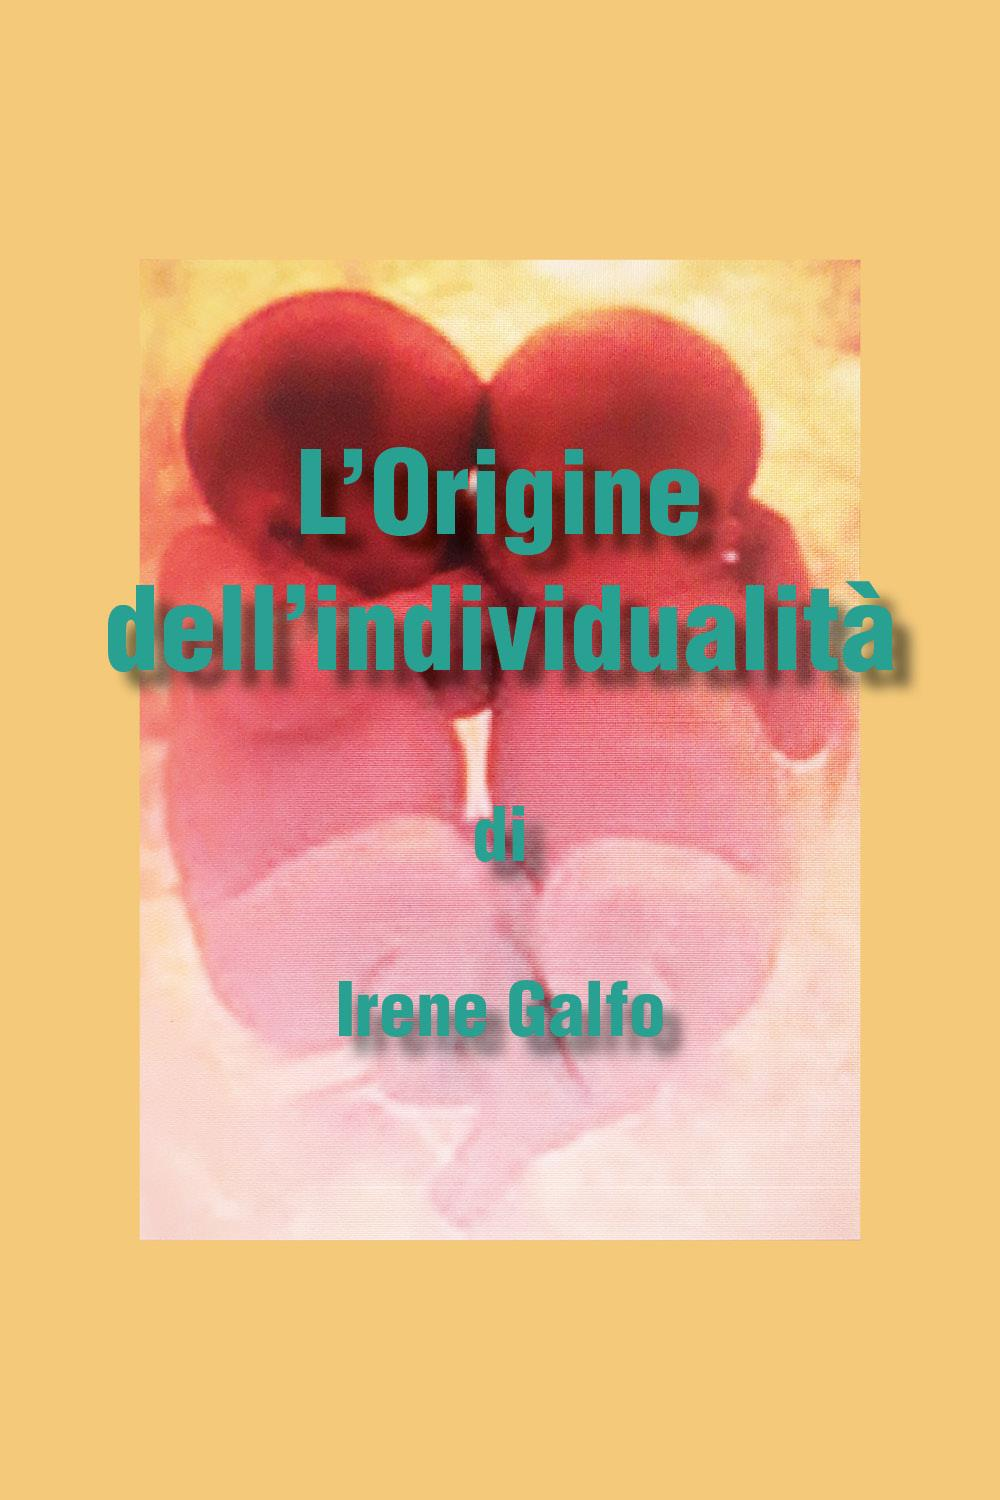 L'origine dell'individualità